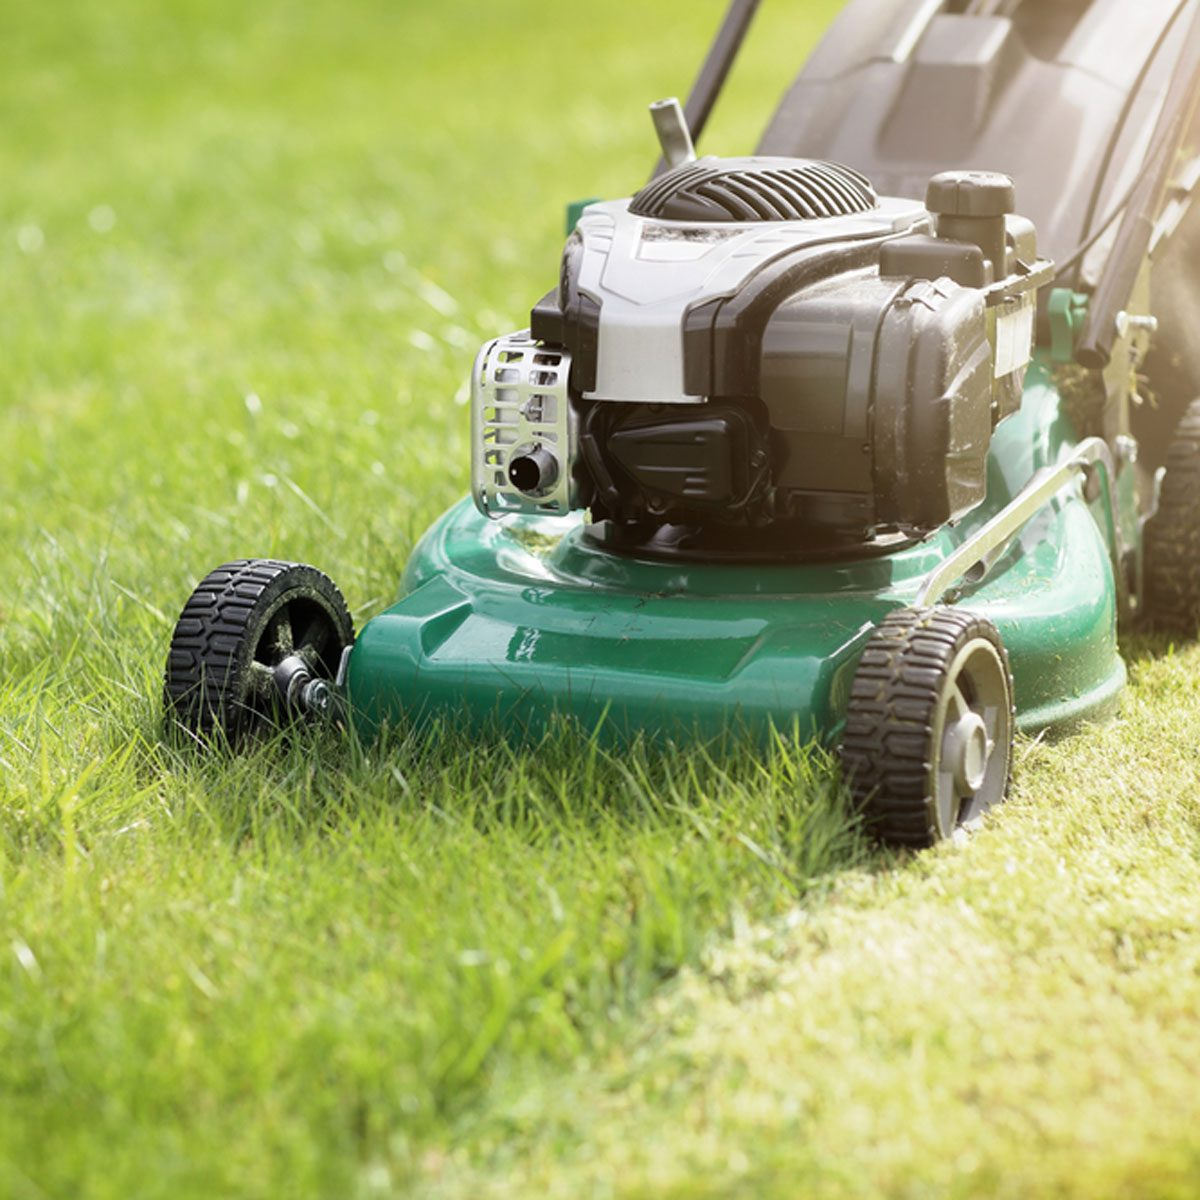 Mowing lawn short